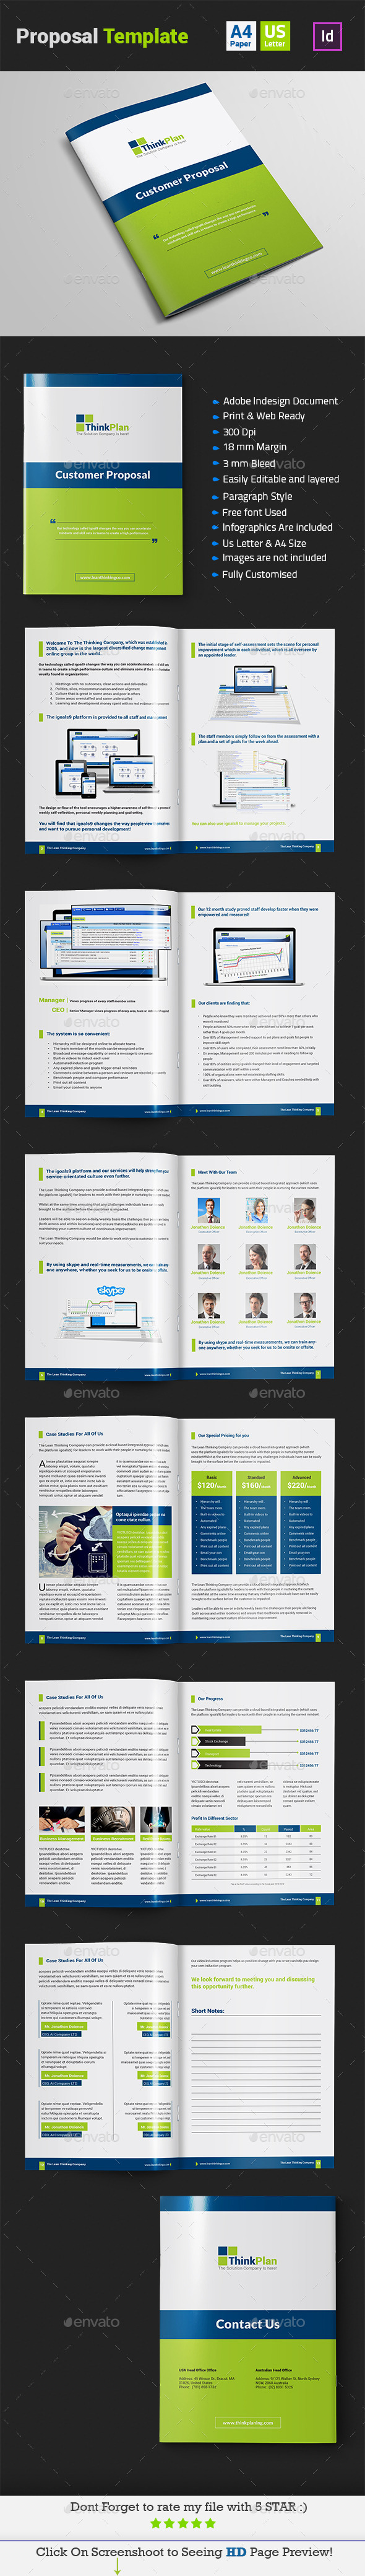 GraphicRiver Proposal Template Indesign Layout 11114374